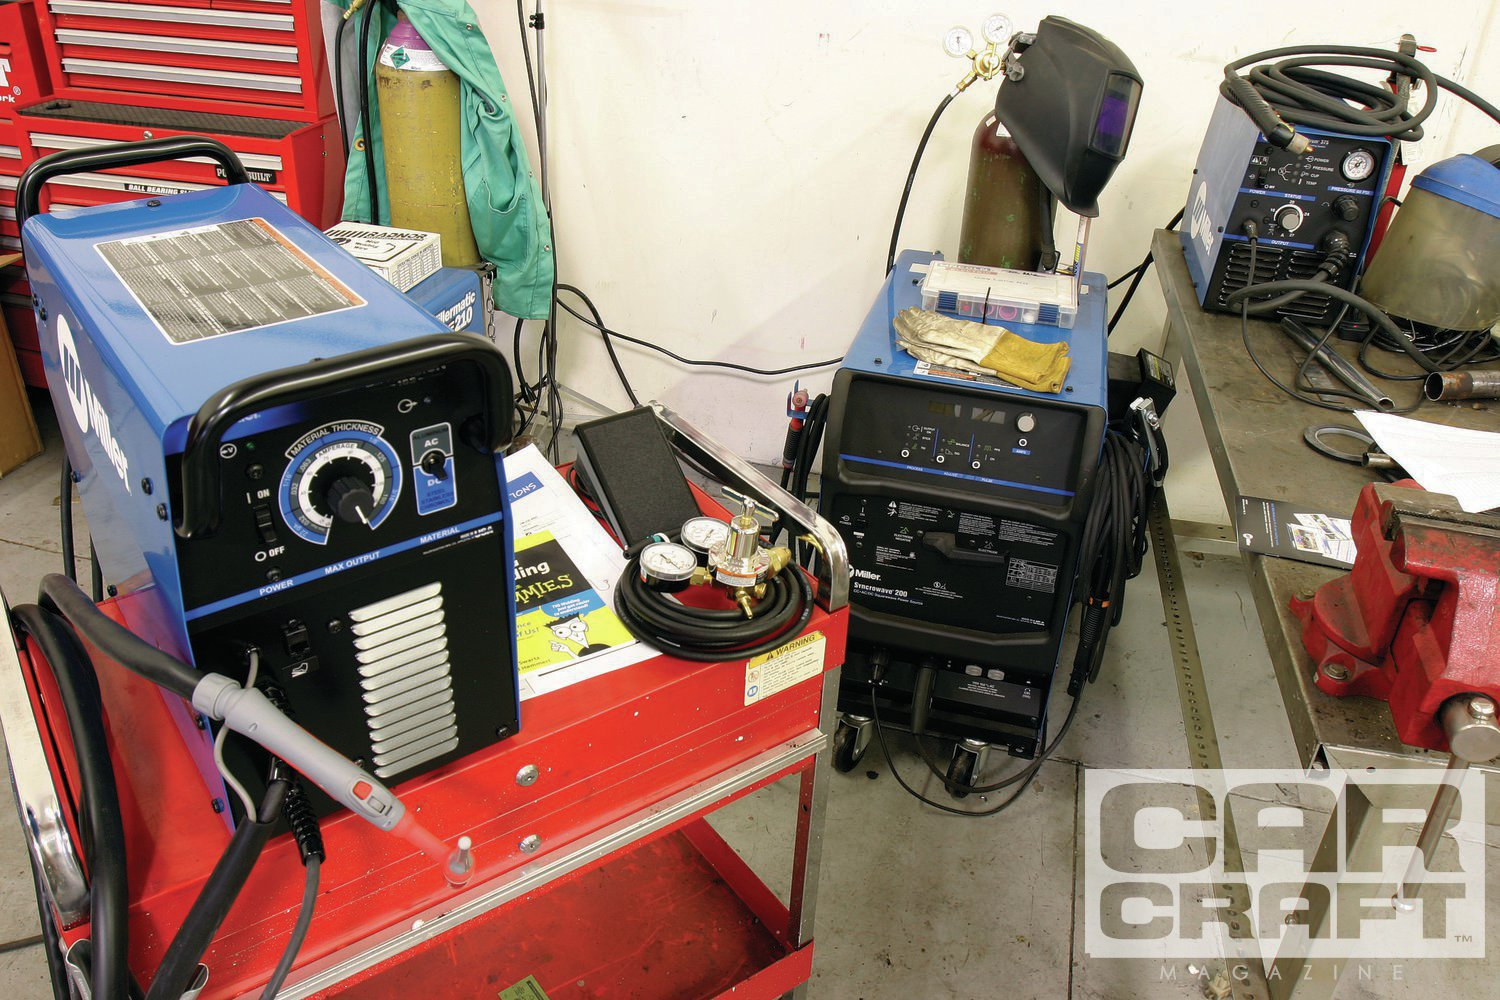 On the right is Miller's Syncrowave 200, predecessor to the new 210, flanked on the left by our new (at the time) Diversion 165, Miller's much smaller, entry-level TIG machine. Miller Diversion series are inverter-based welders.